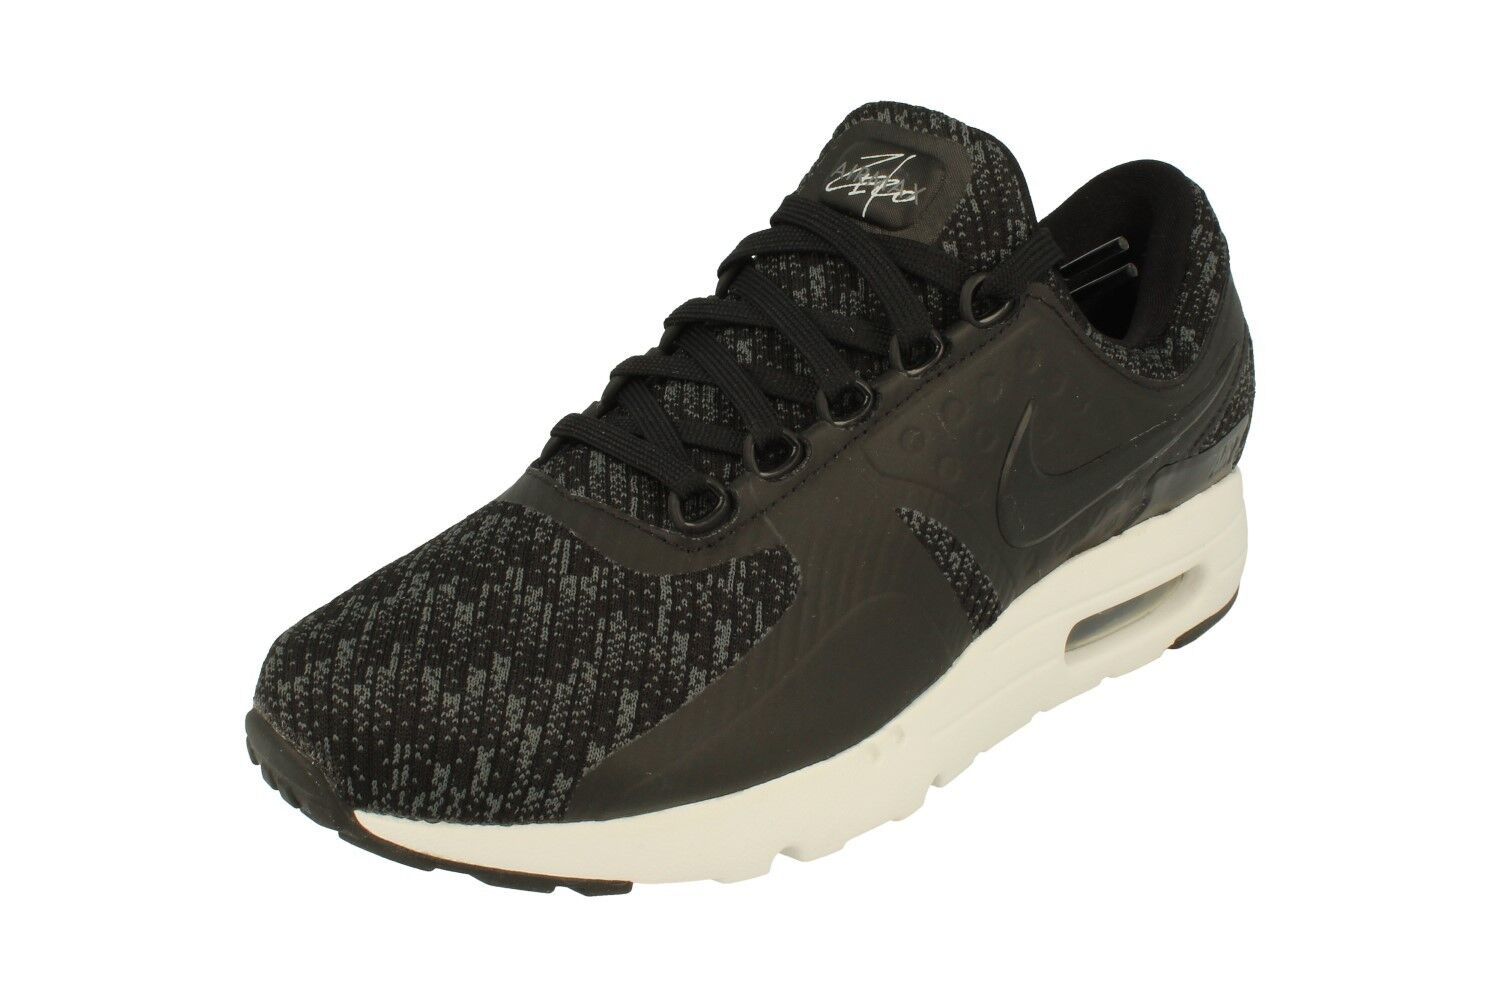 Nike Air Max Zero Se Mens Running Trainers 918232 Sneakers Shoes 005 Brand discount